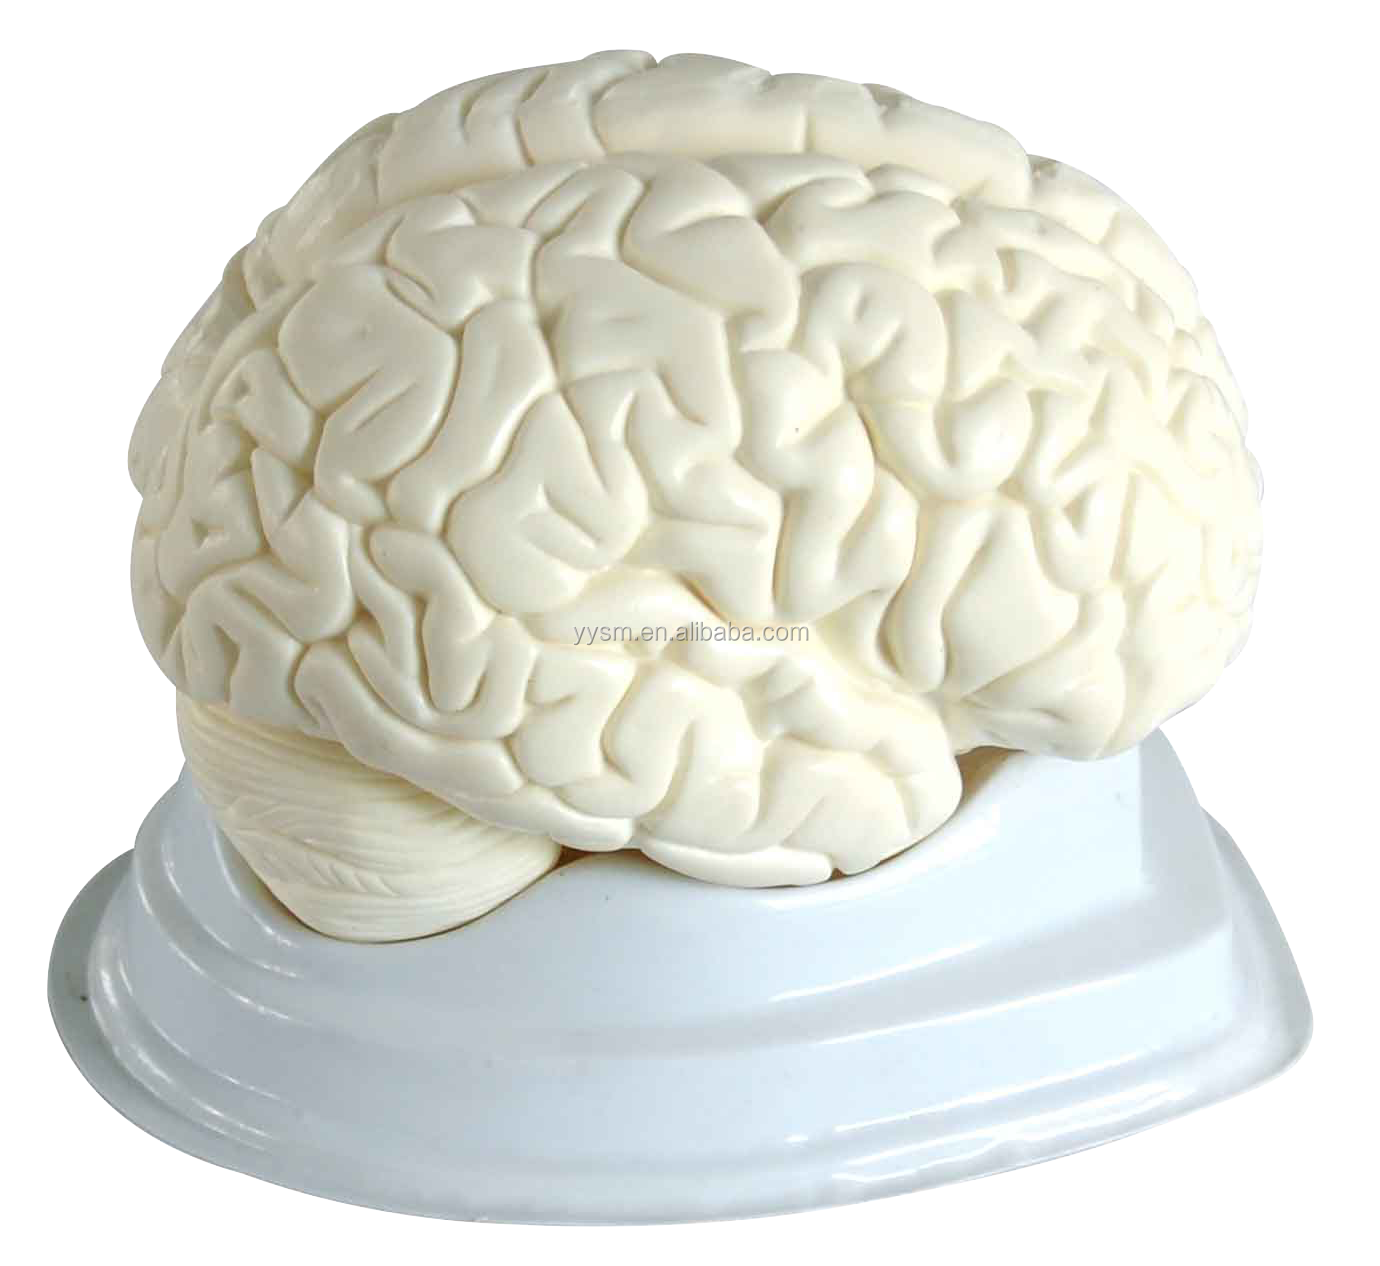 Human anatomy brain model-anatomic model human brain enlarge model 3 parts